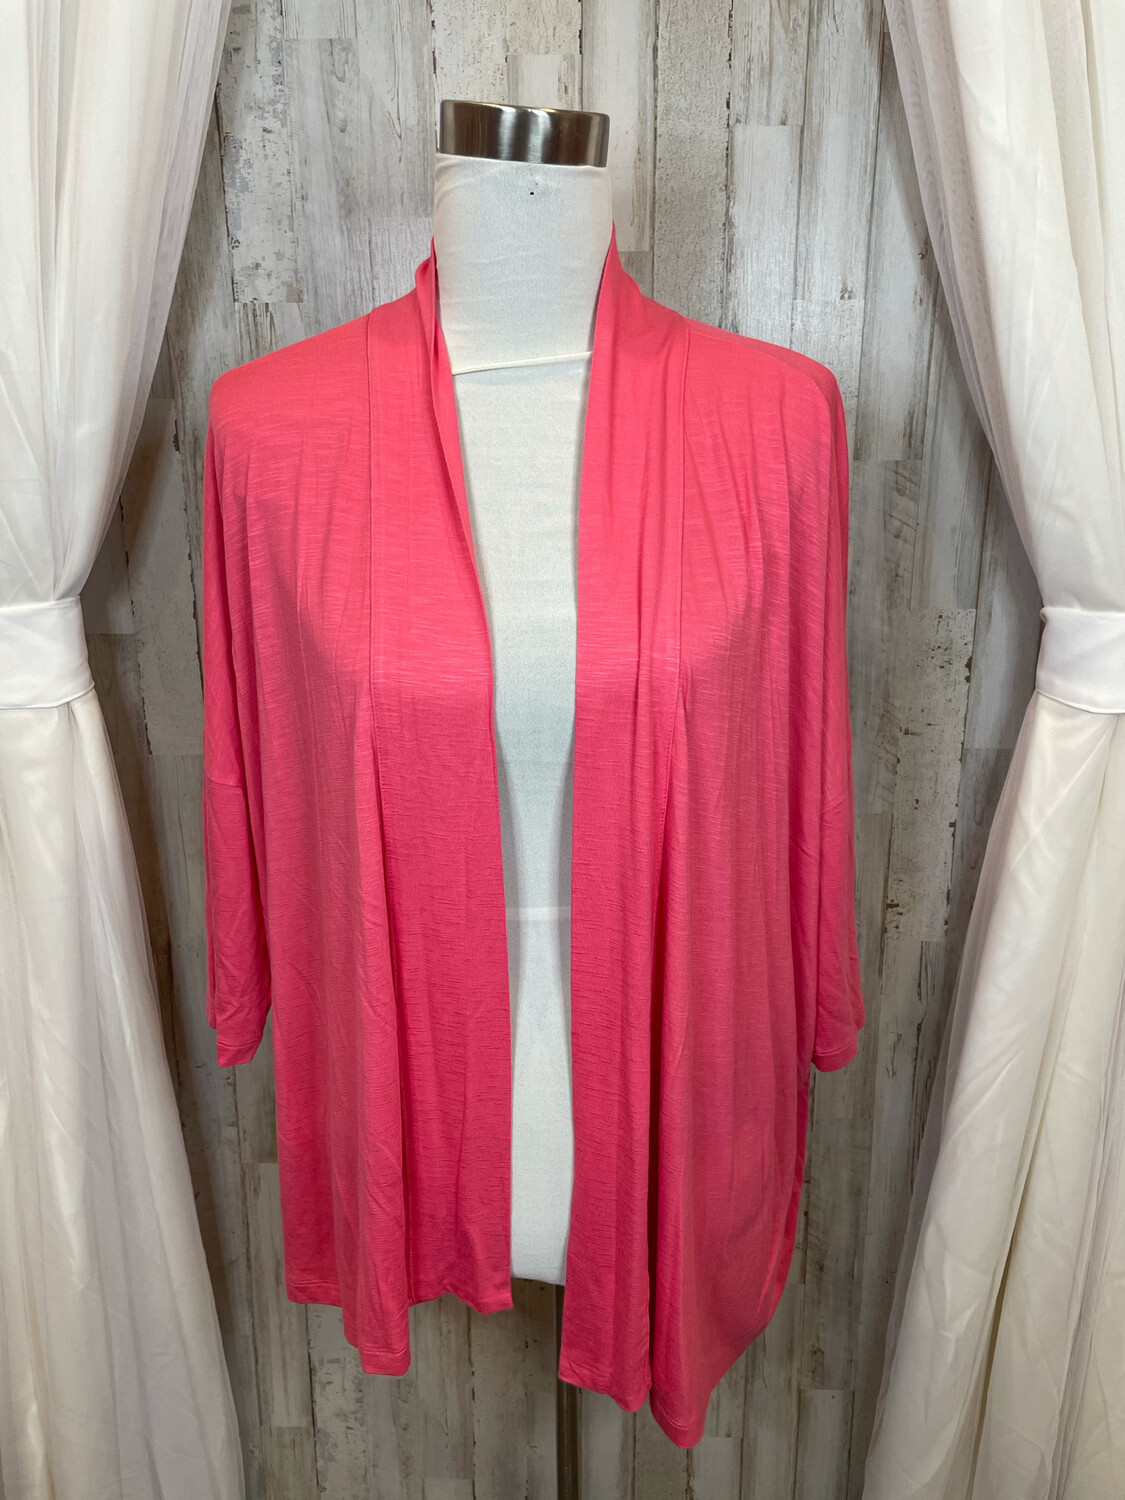 Chico's Pink Cropped Sleeve Casual Cardigan - M